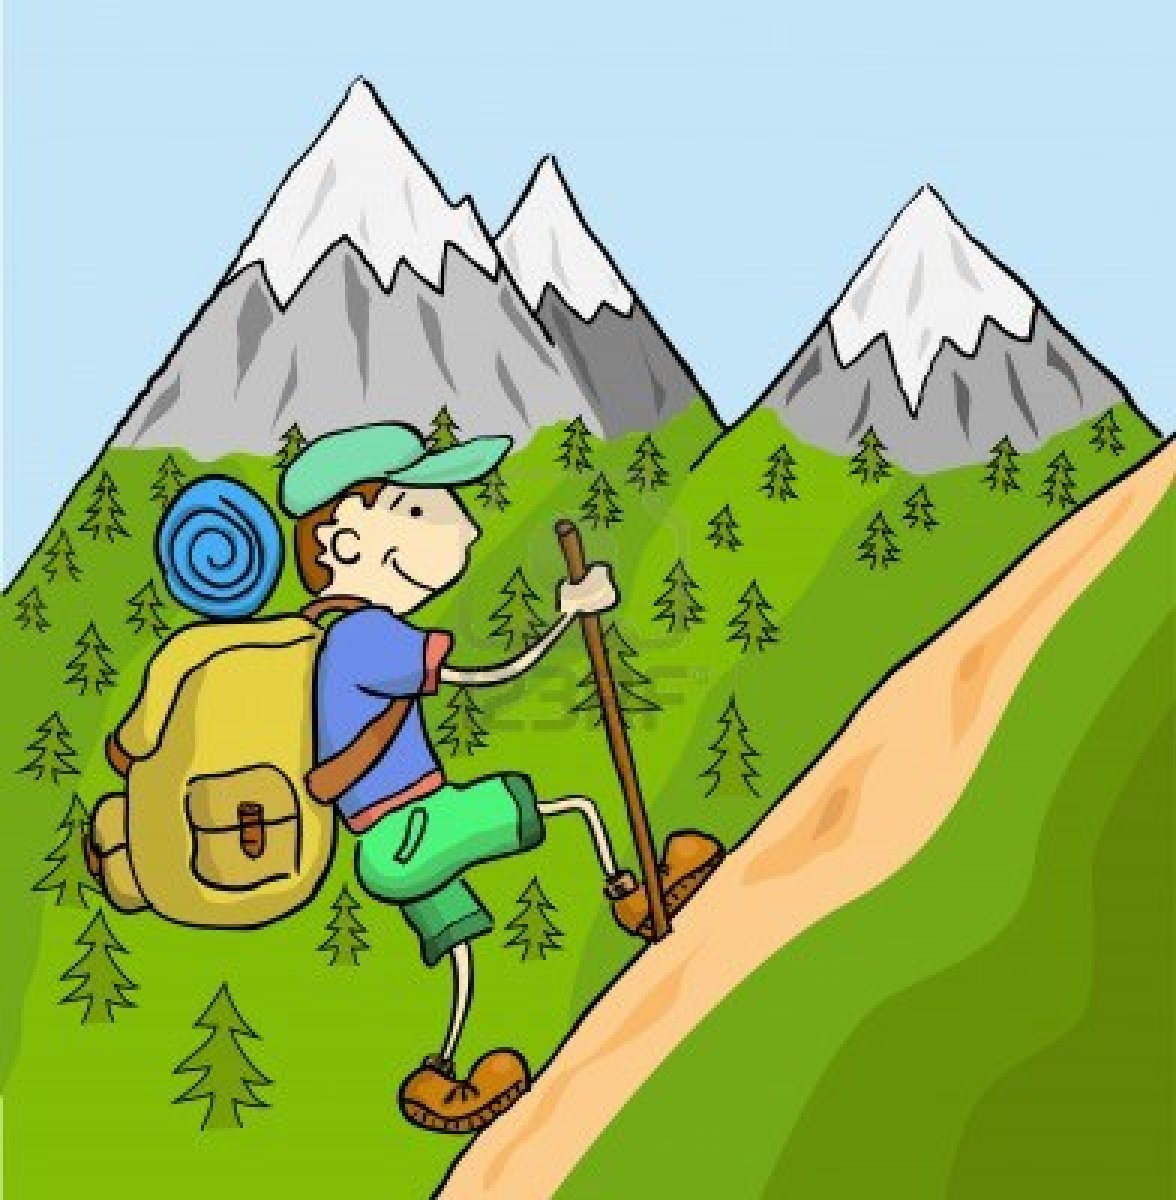 Guy walking up hill clipart image Free Couple Hiking Cliparts, Download Free Clip Art, Free Clip Art ... image